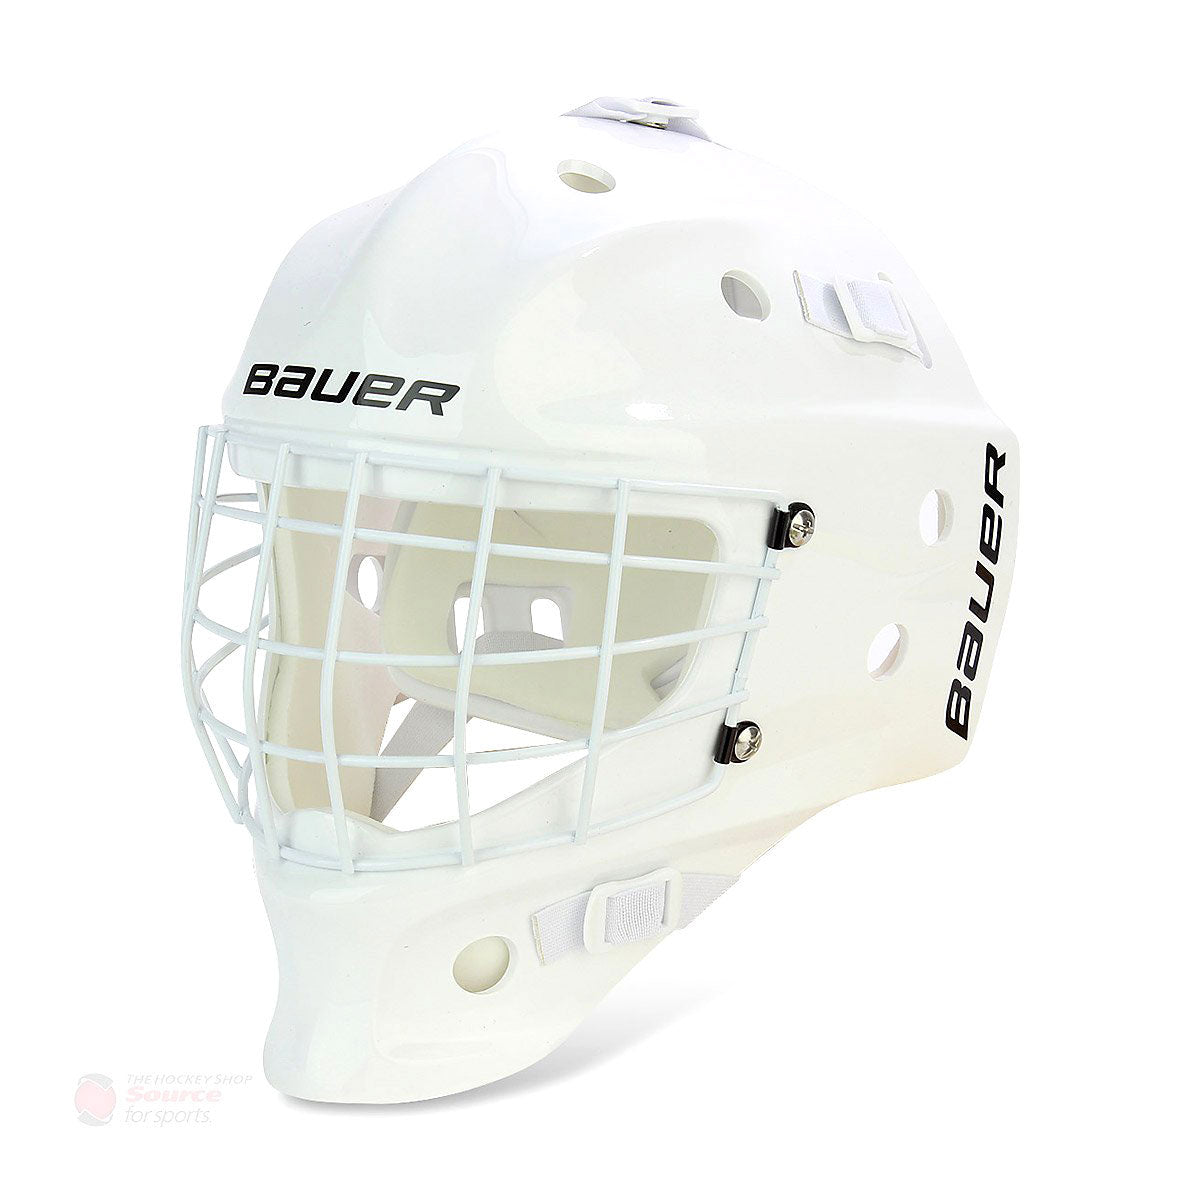 Bauer NME Street Hockey Goalie Mask